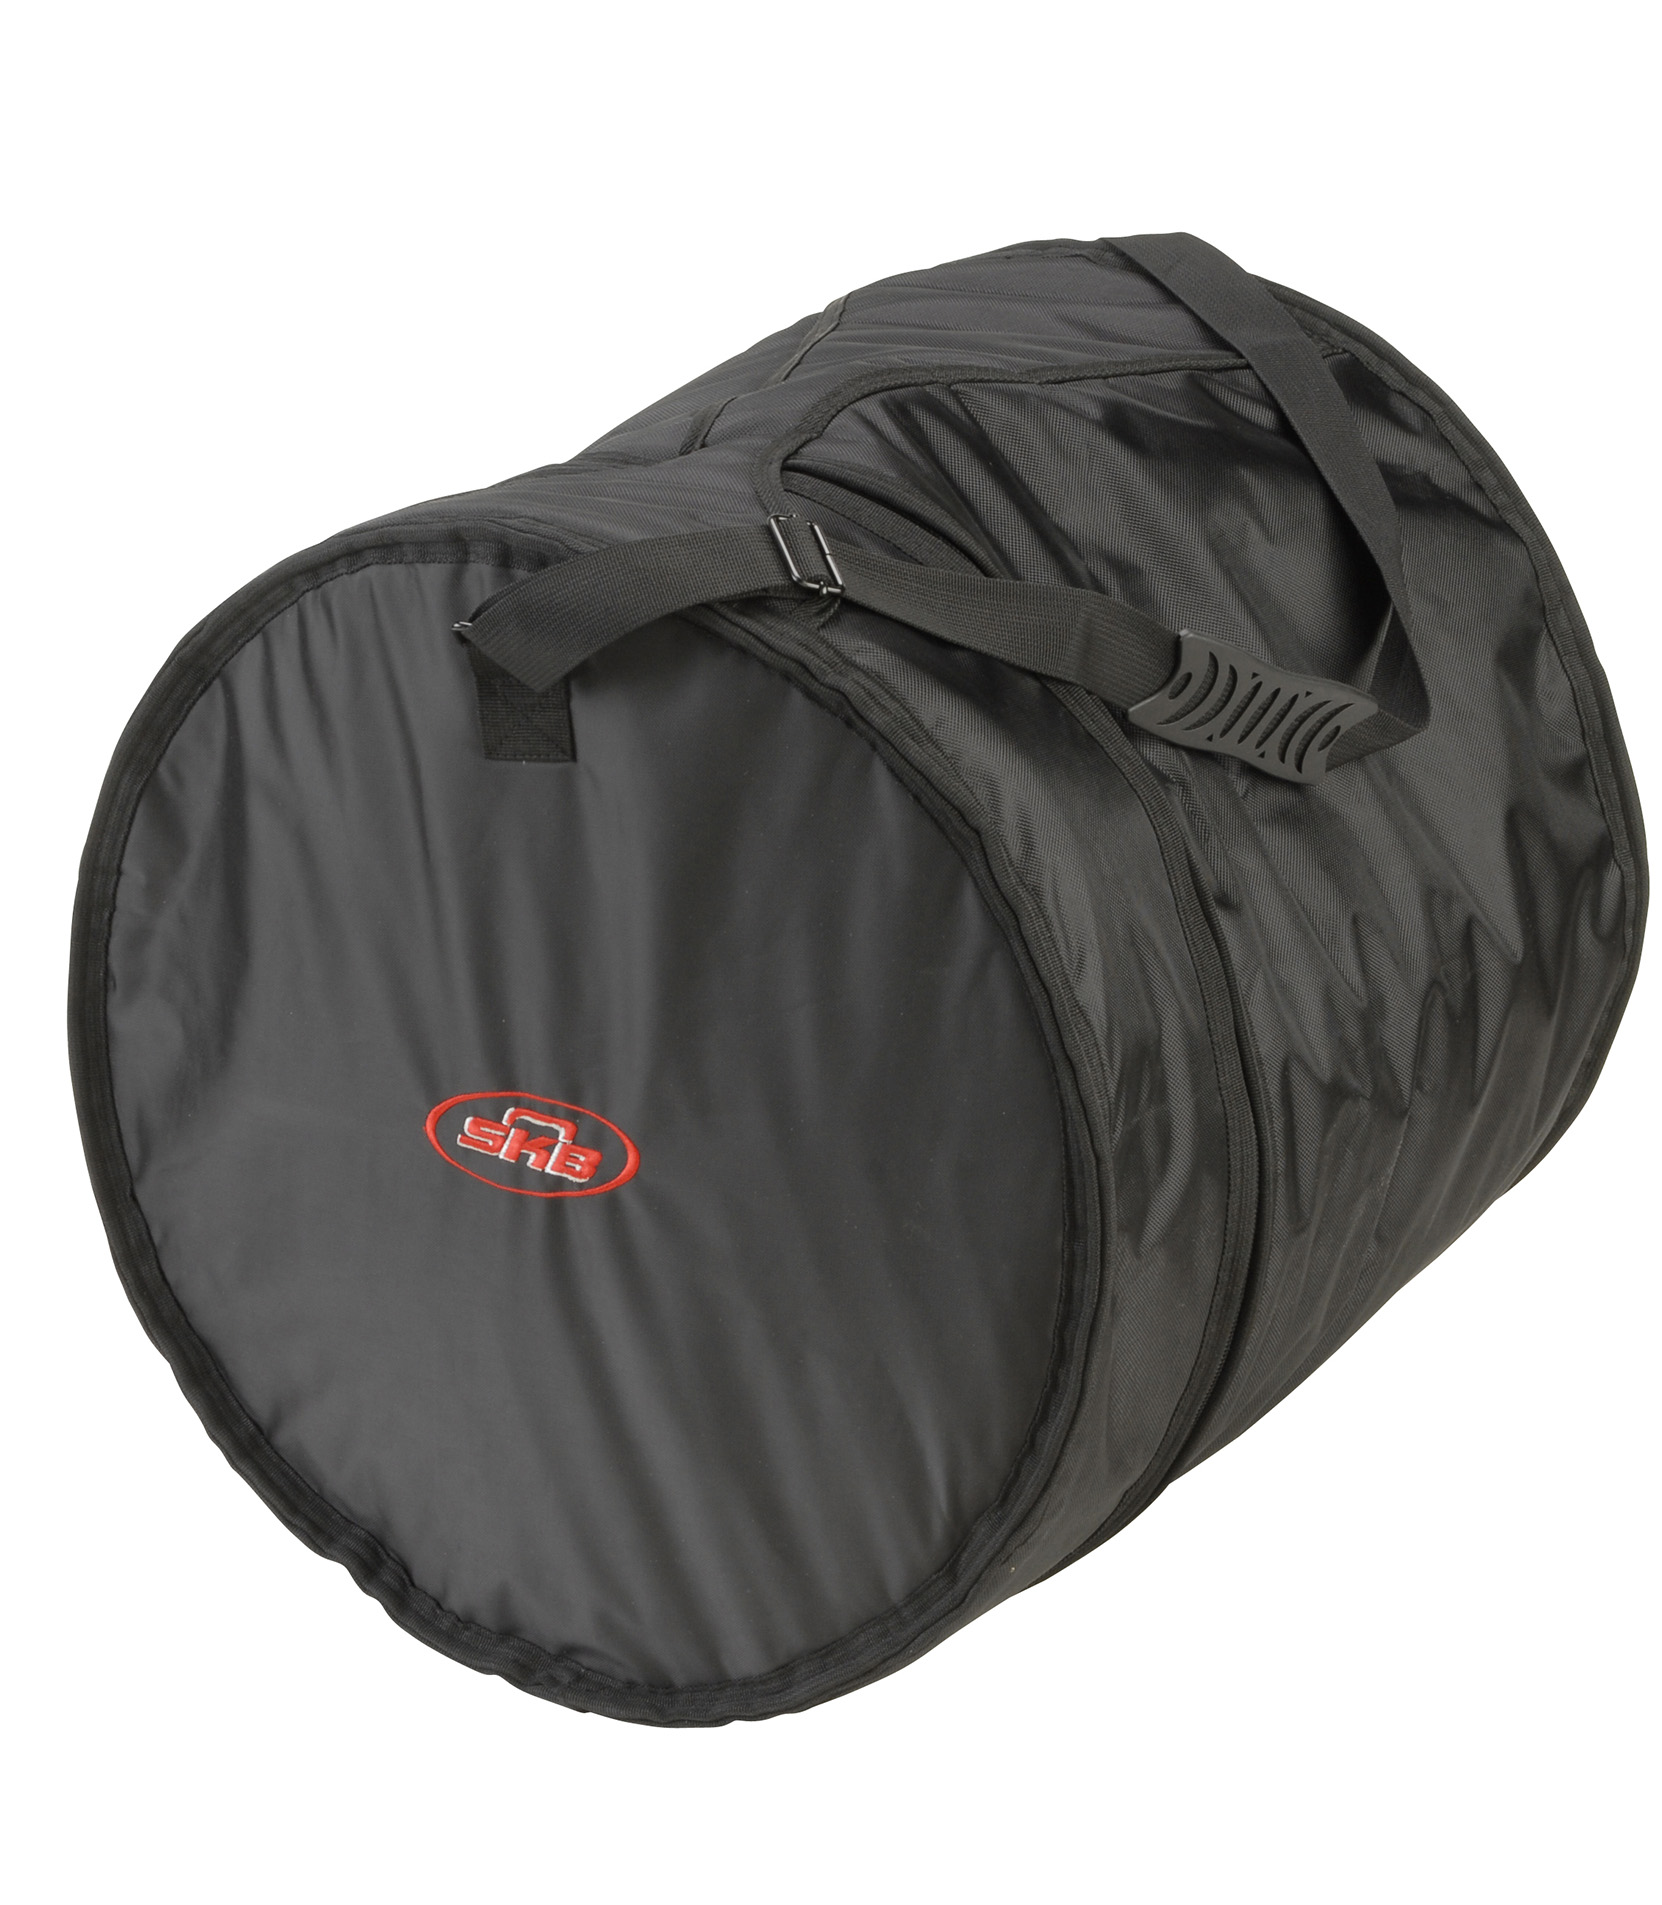 Melody House Musical Instruments Store - 1SKB DB1616 16 x 16 Floor Tom Gig Bag